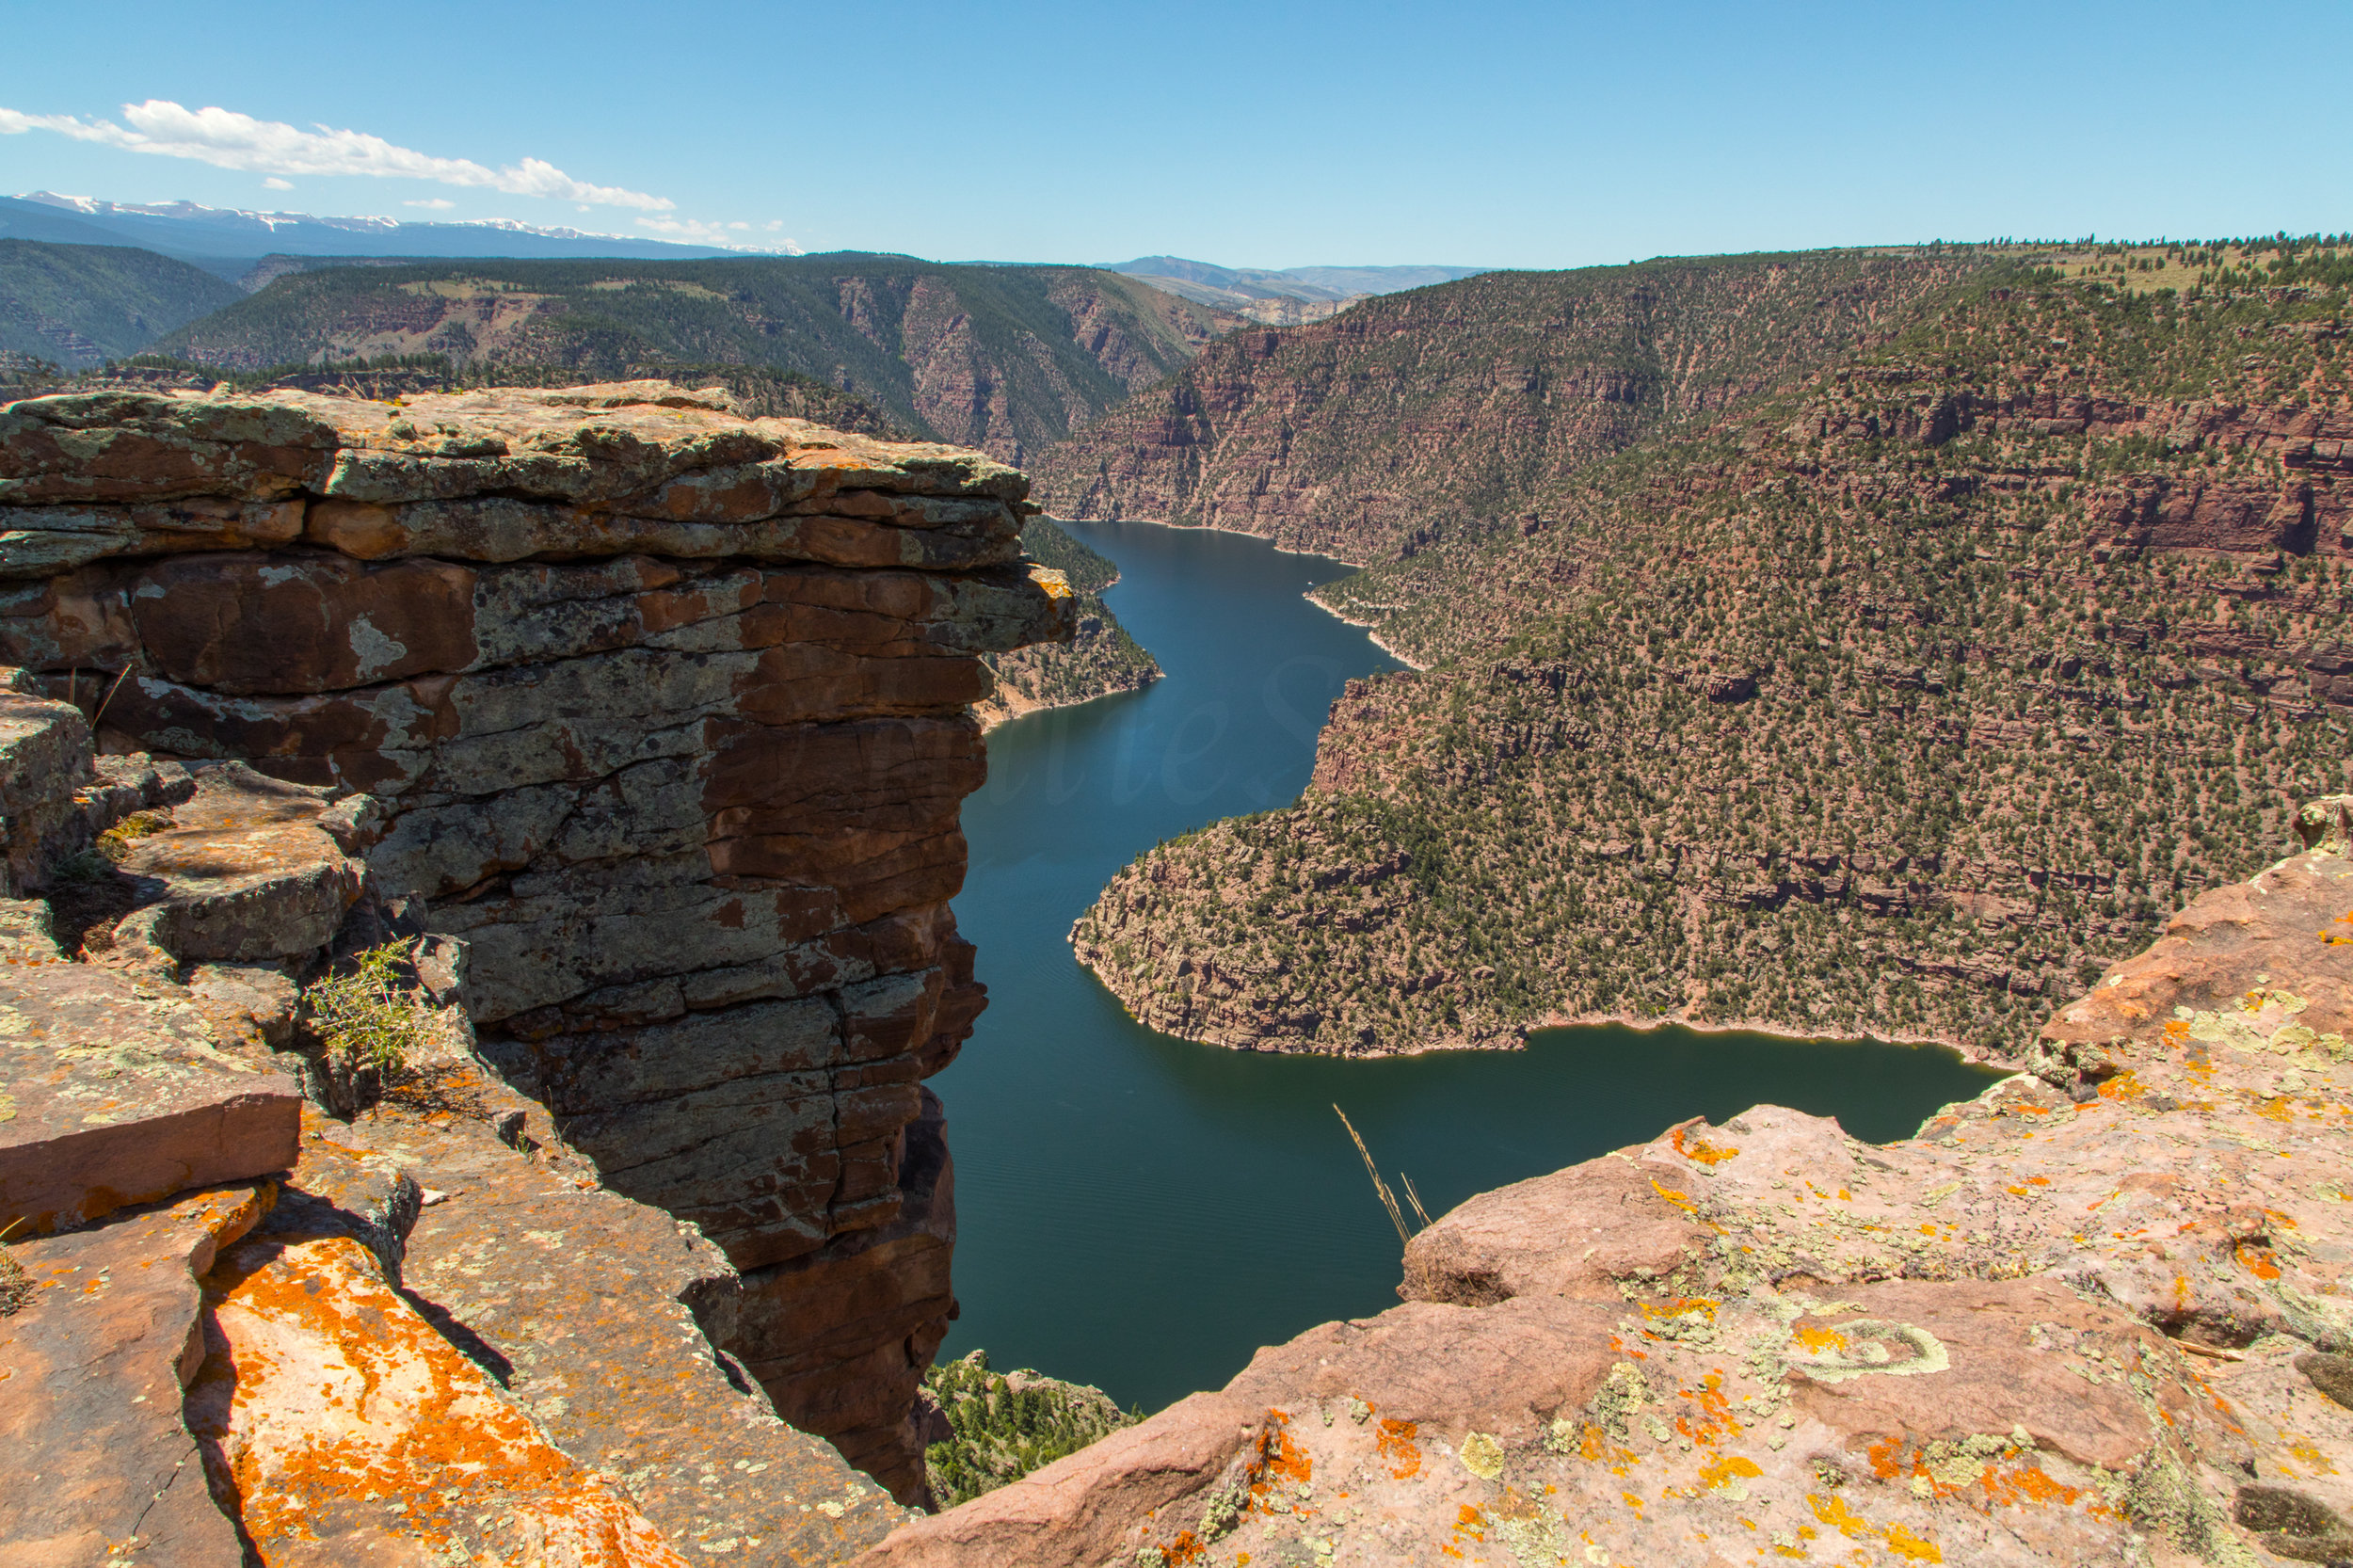 Flaming Gorge National Recreational Area, Image # 9041